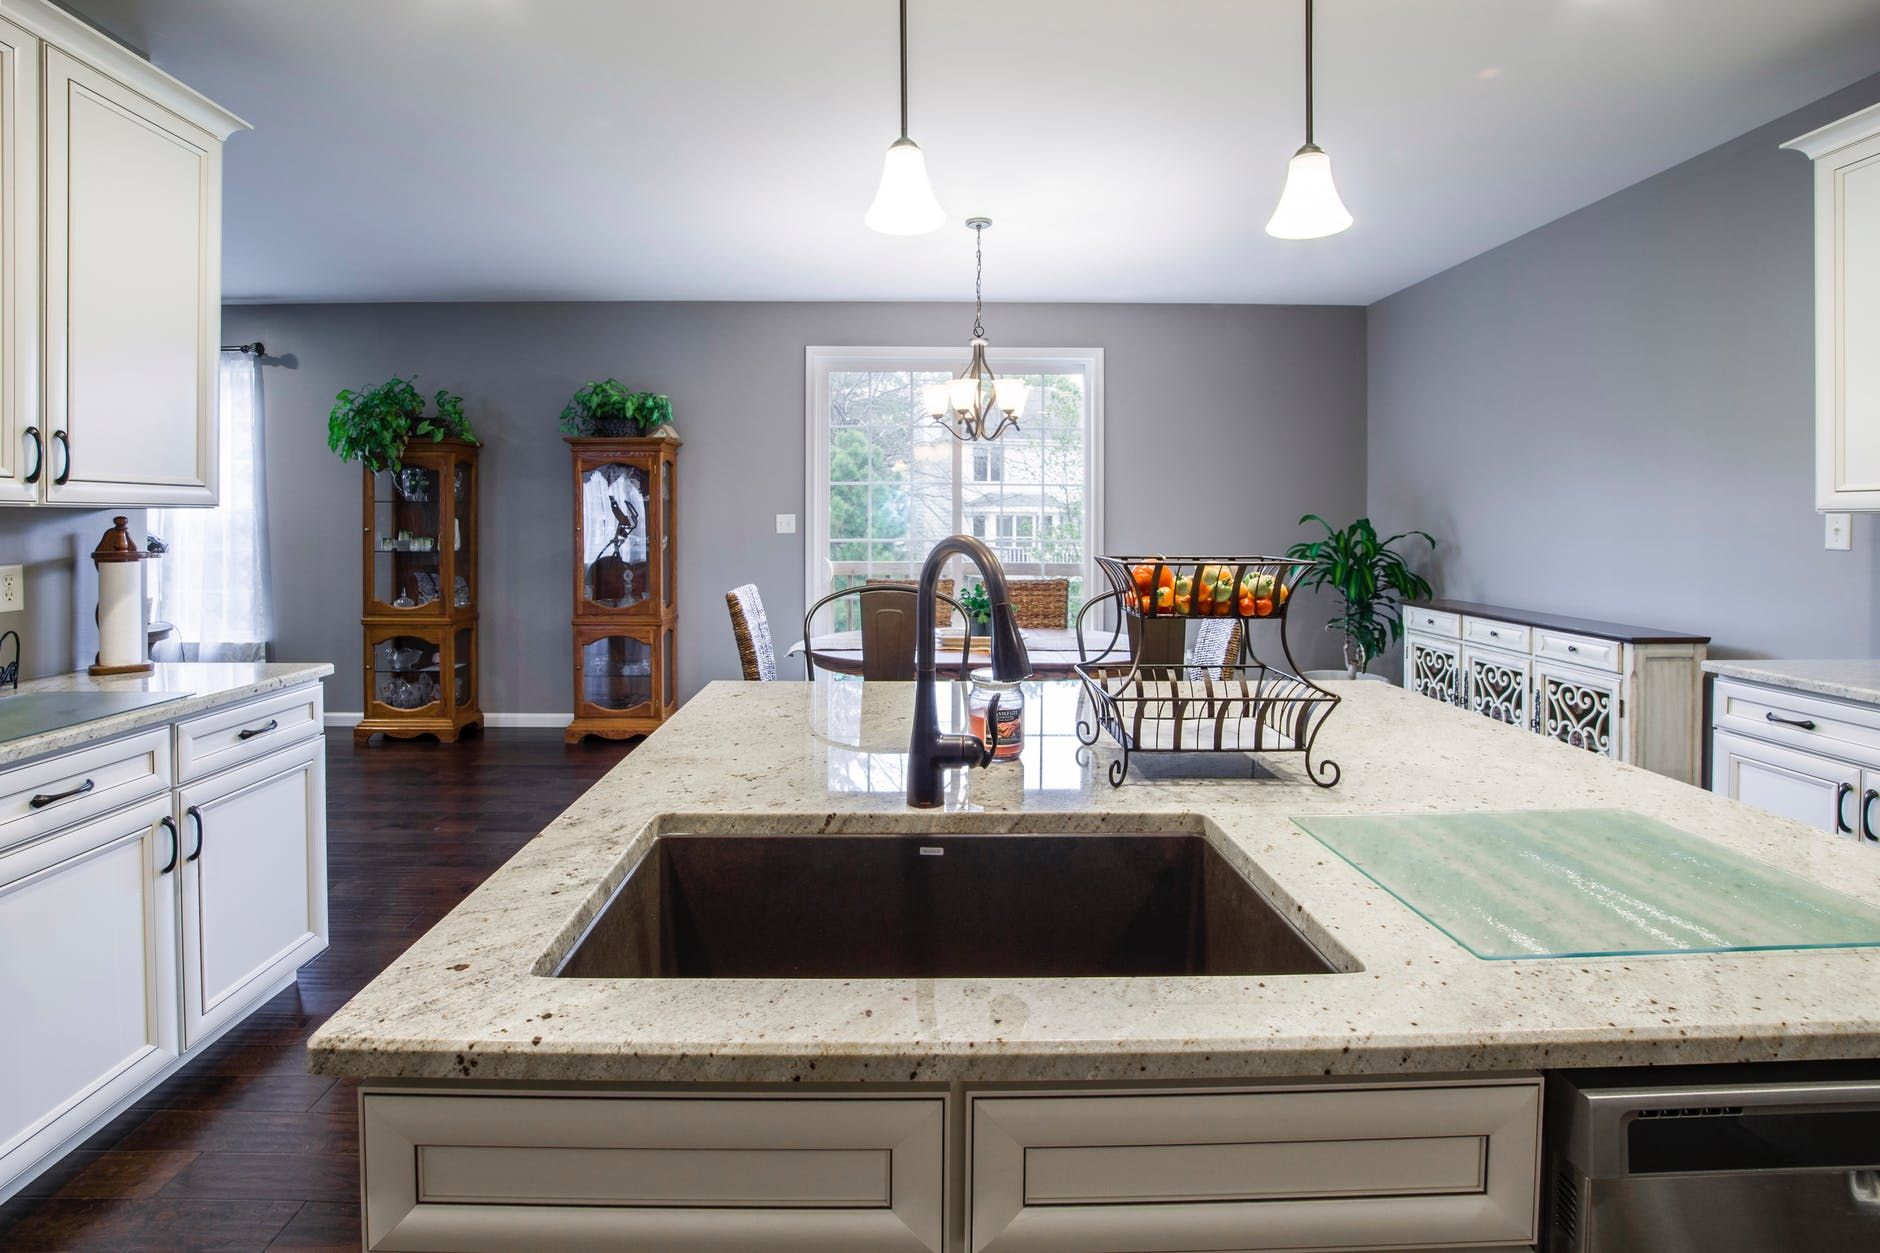 Kitchen Worktop Suppliers Near Me The Key Points To Consider